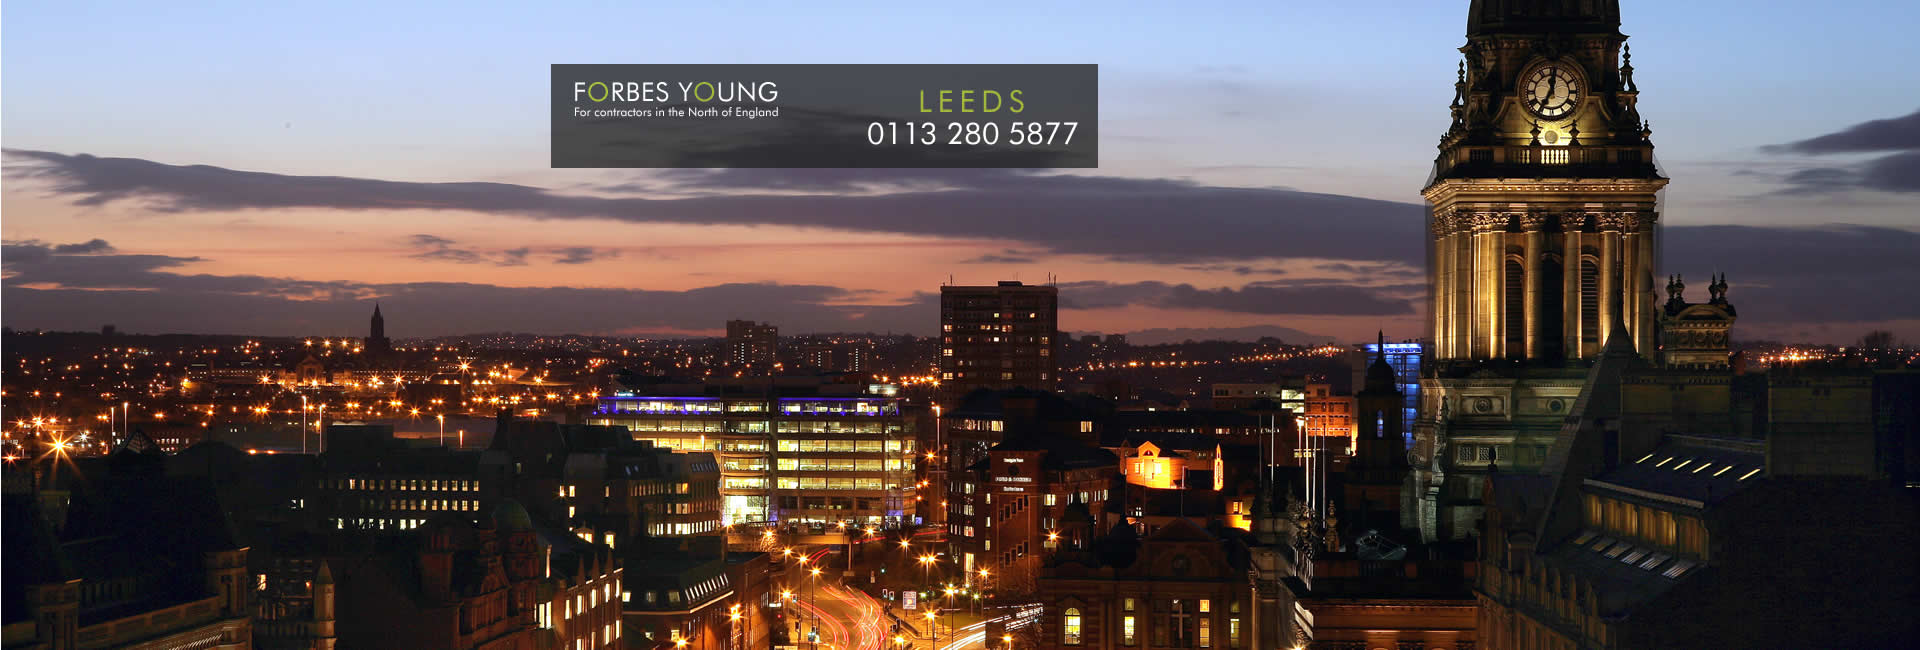 Forbes Young Leeds Contractor Accountants